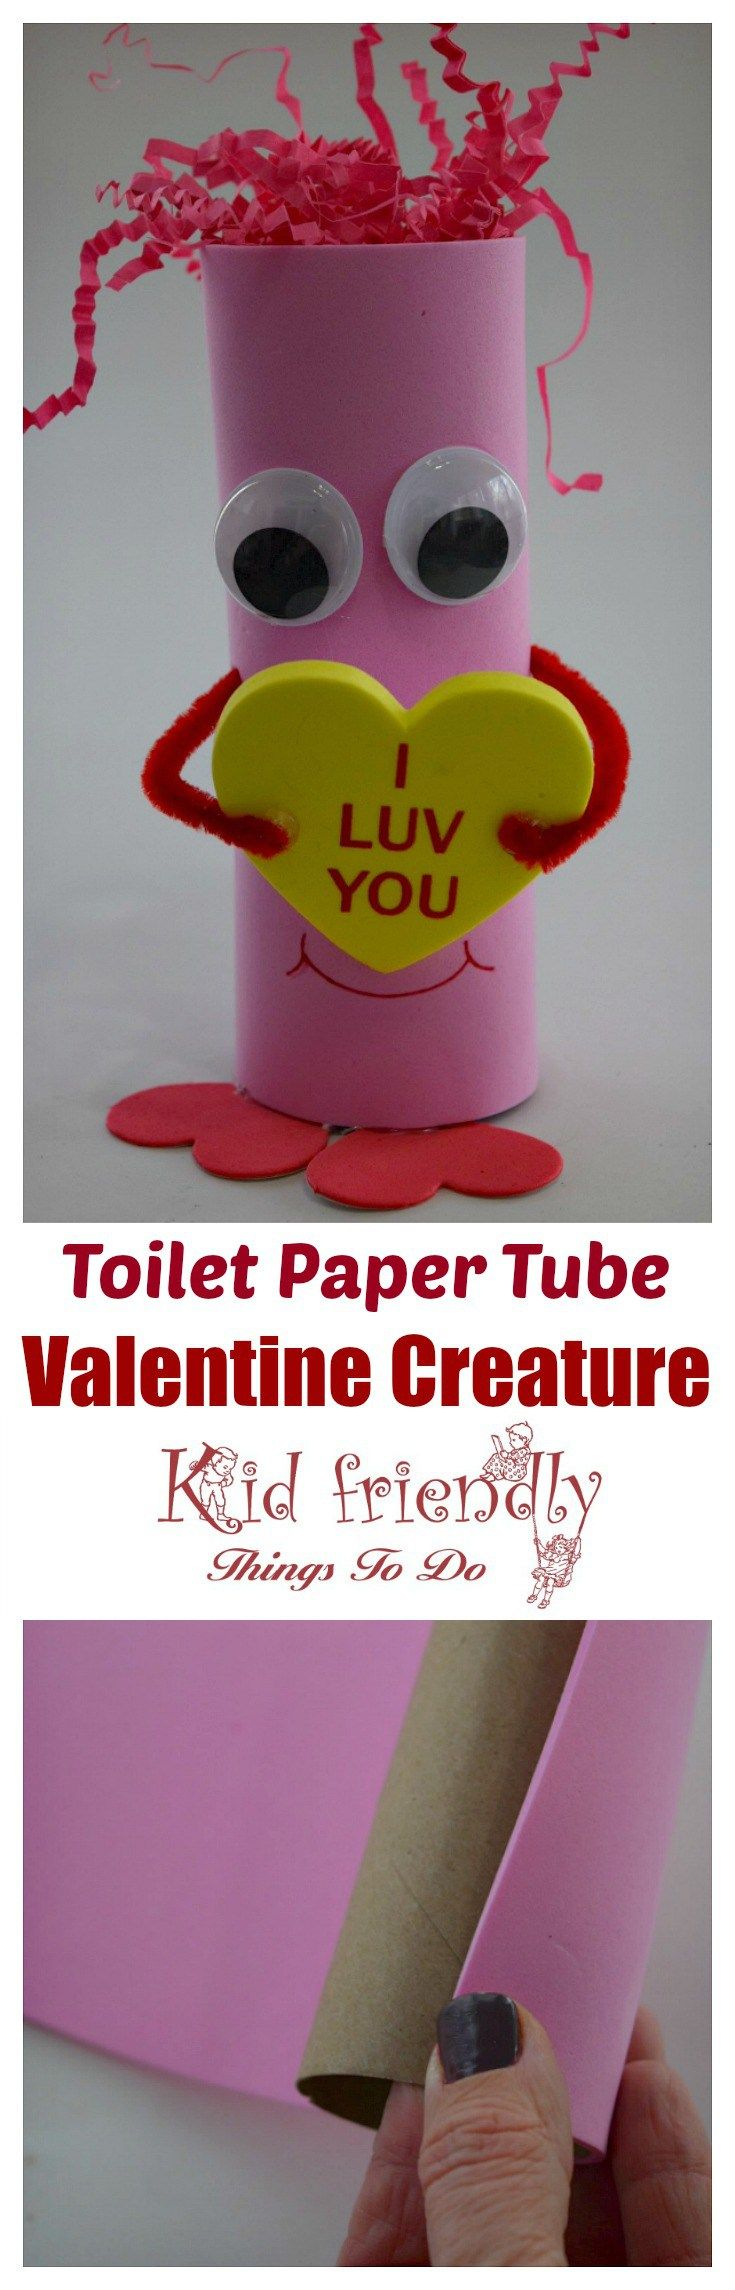 Look at this easy and  adorable Valentine Creature! Perfect for preschool kids and elementary school Valentine's Day party craft. You can get everything at the Dollar Store! www.kidfriendlythingstodo.com